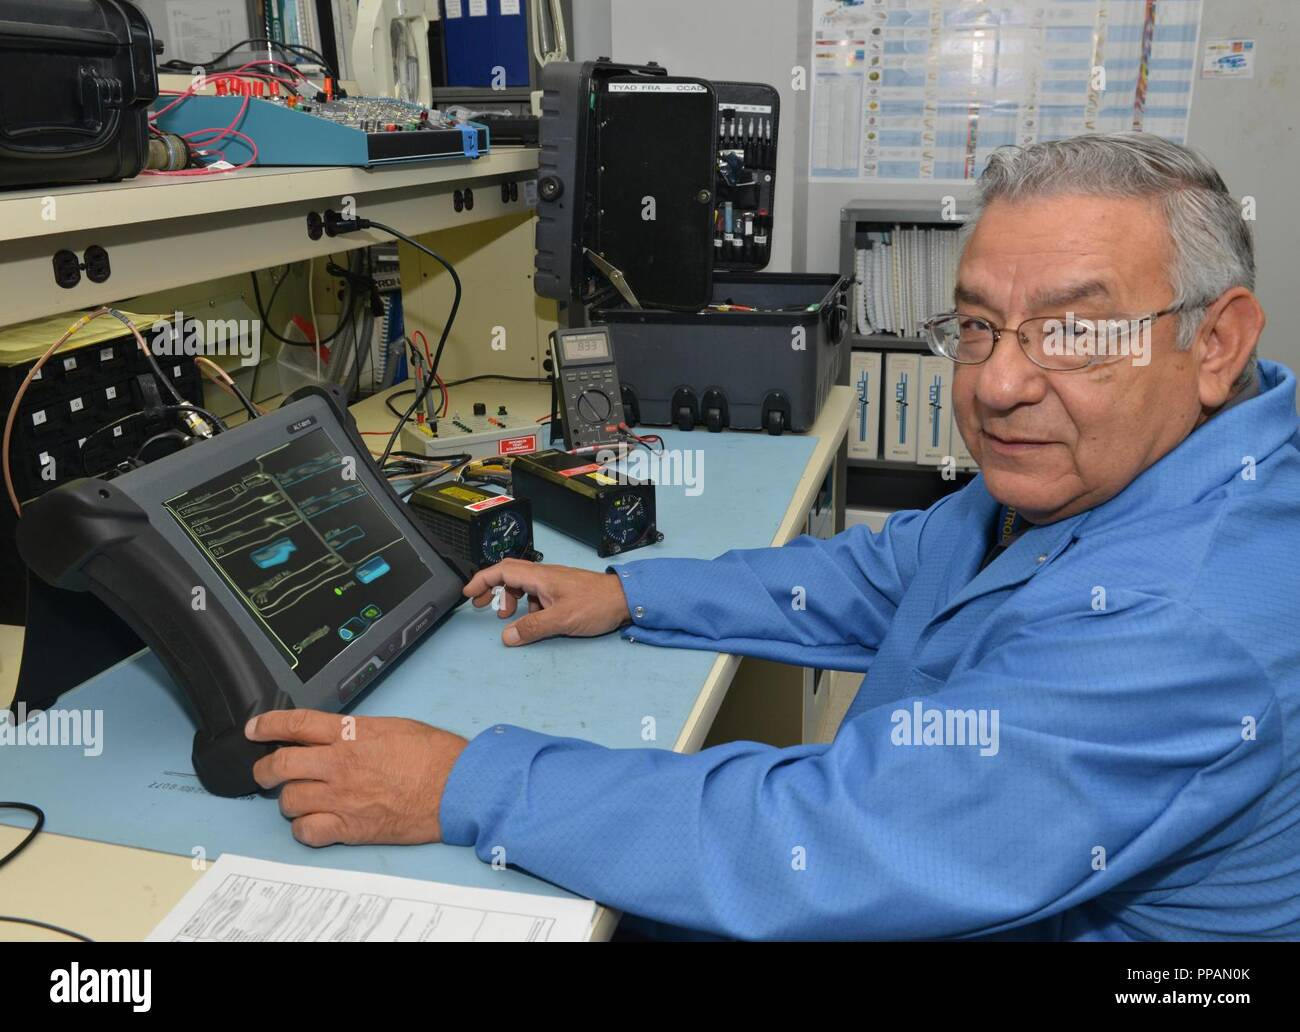 """Electronics Integrated Systems Mechanic Santiago """"Jim"""" Gonzales repairs avionics systems and serviceable items on military helicopters at Tobyhanna's Forward Repair Activity, Corpus Christi Army Depot, Texas. ( - Stock Image"""